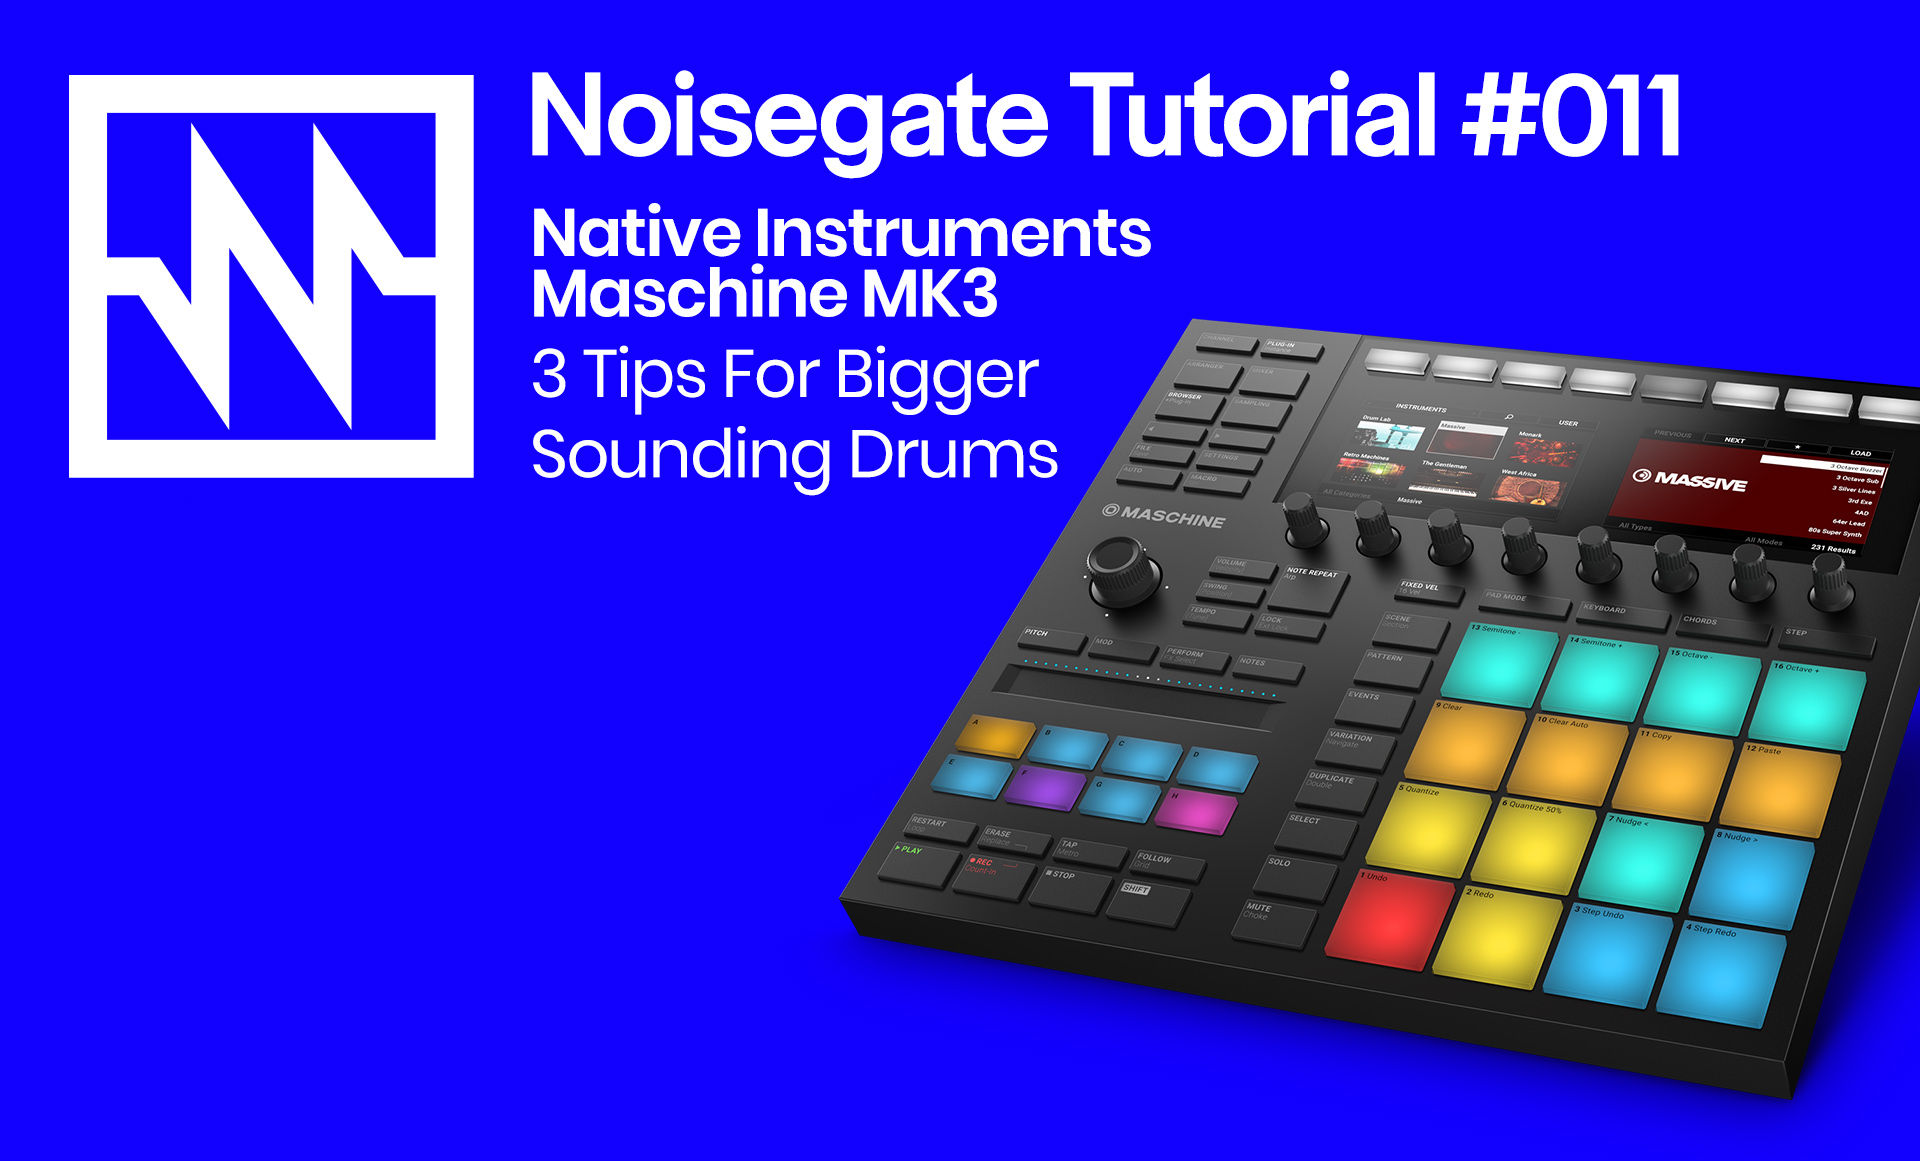 Noisegate Tutorial #11: Maschine-3 Tips For Bigger Sounding Drums